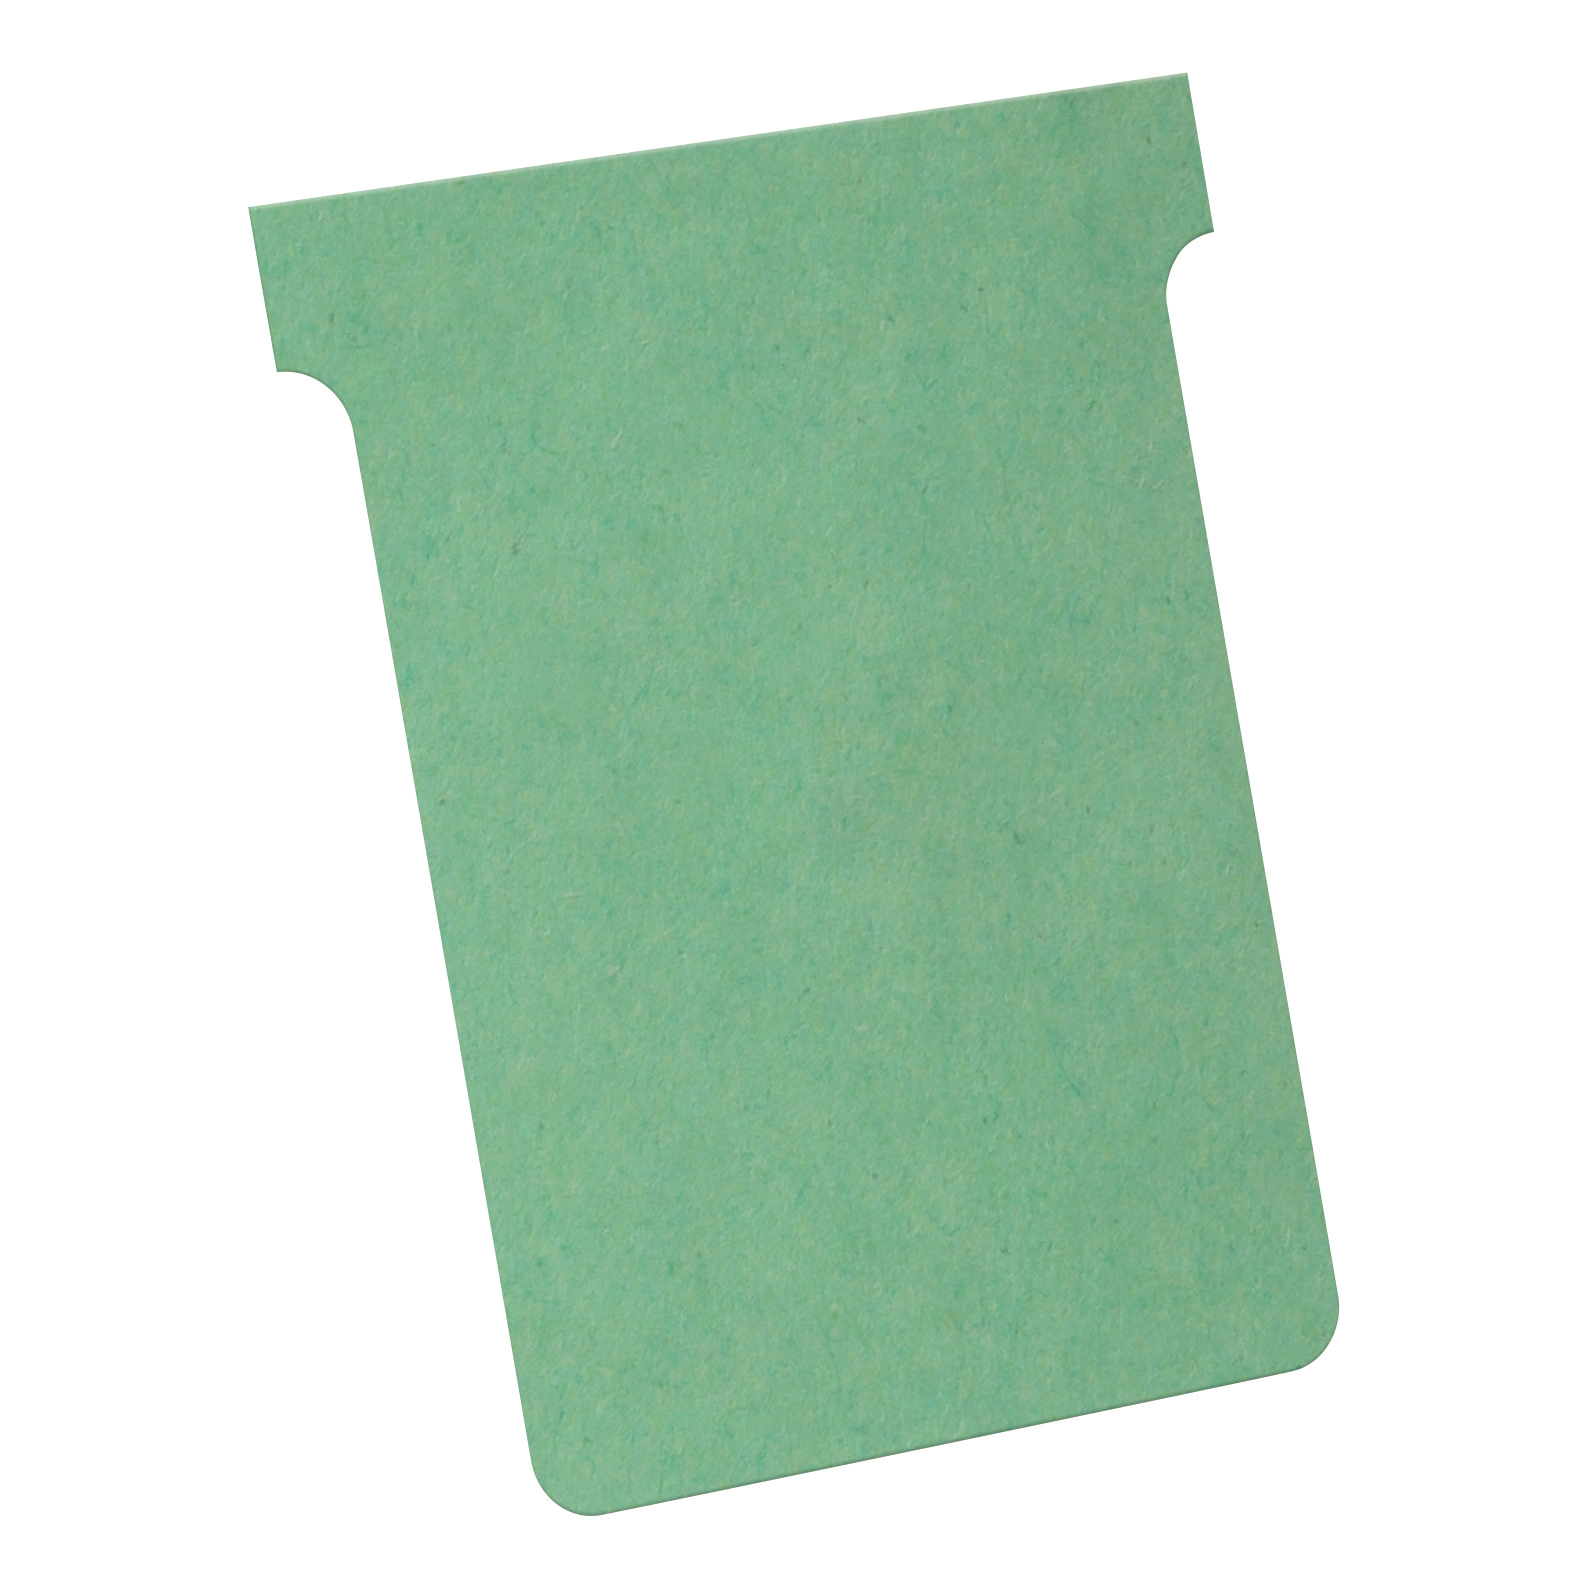 T Cards Nobo T-Cards 160gsm Tab Top 15mm W92x Bottom W80x Full H120mm Size 3 Green Ref 32938913 Pack 100